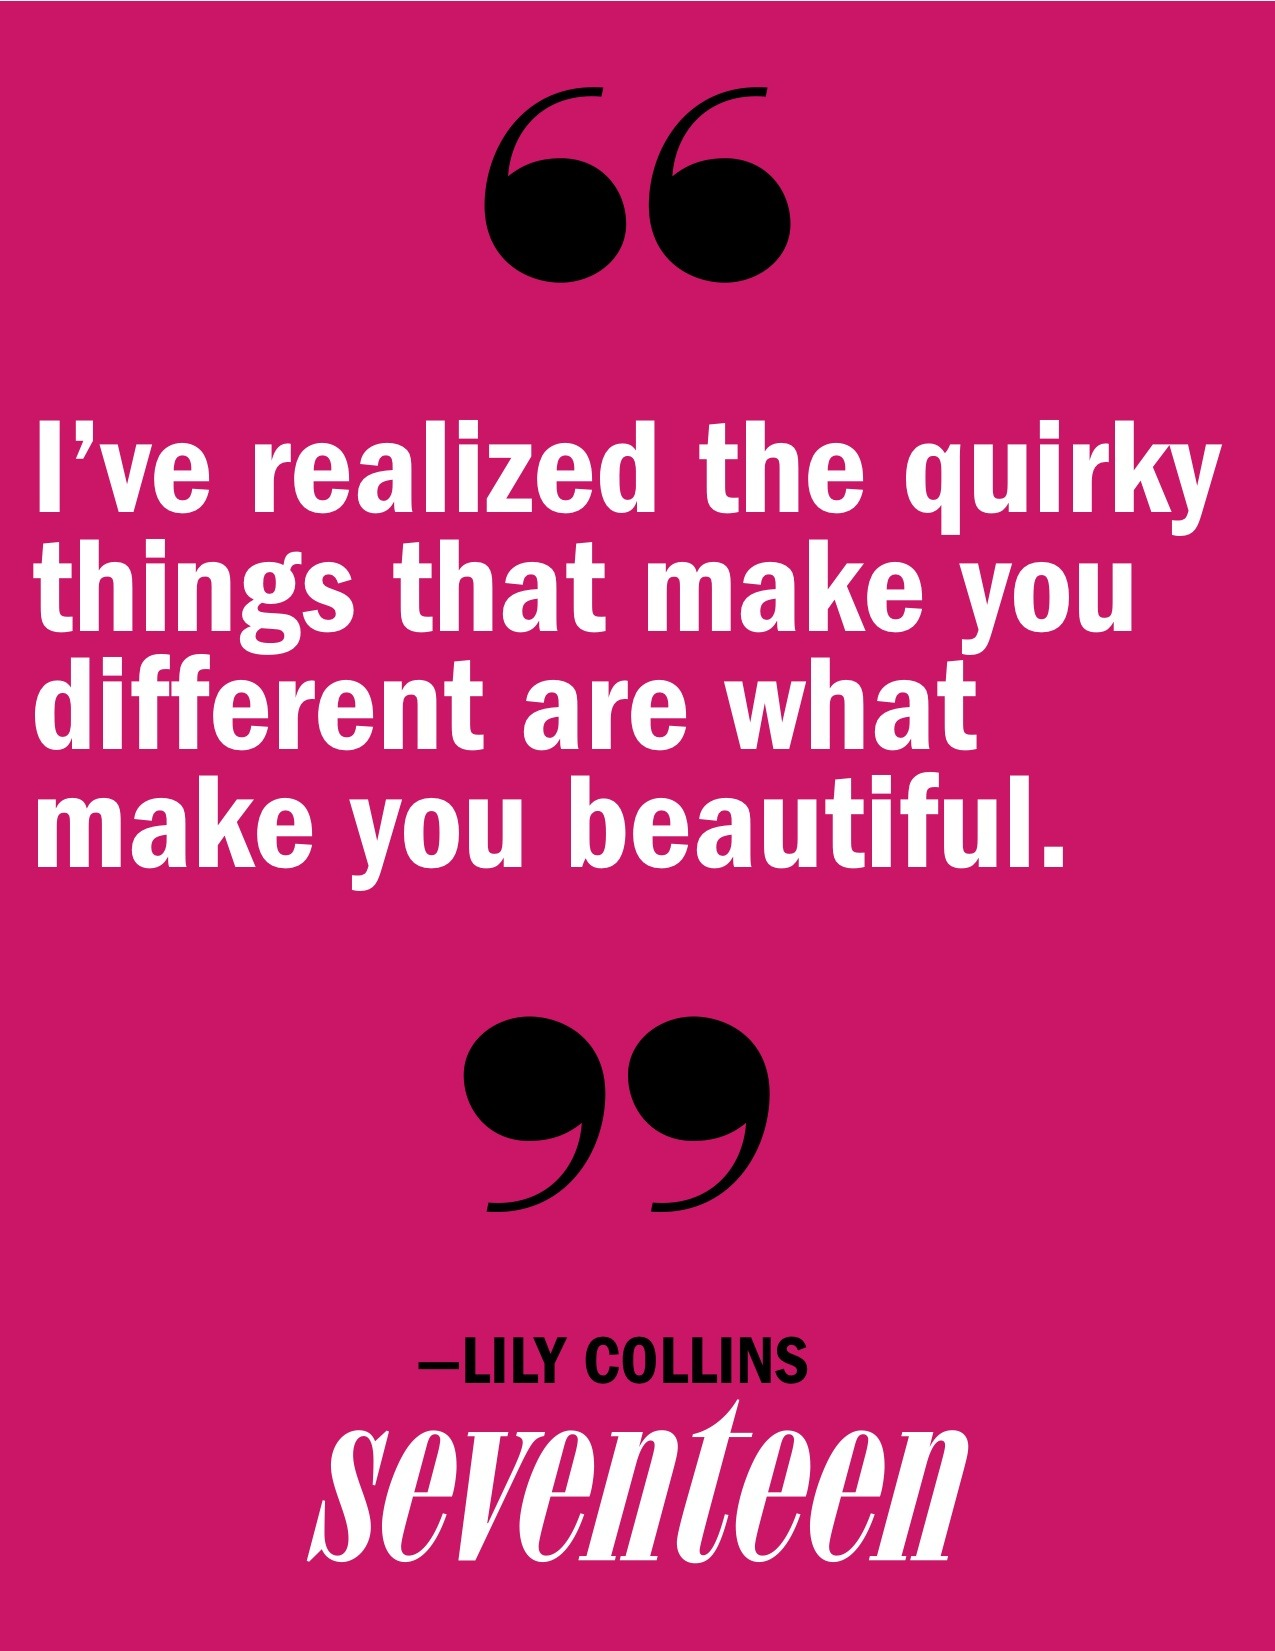 Read more from Lily, here.